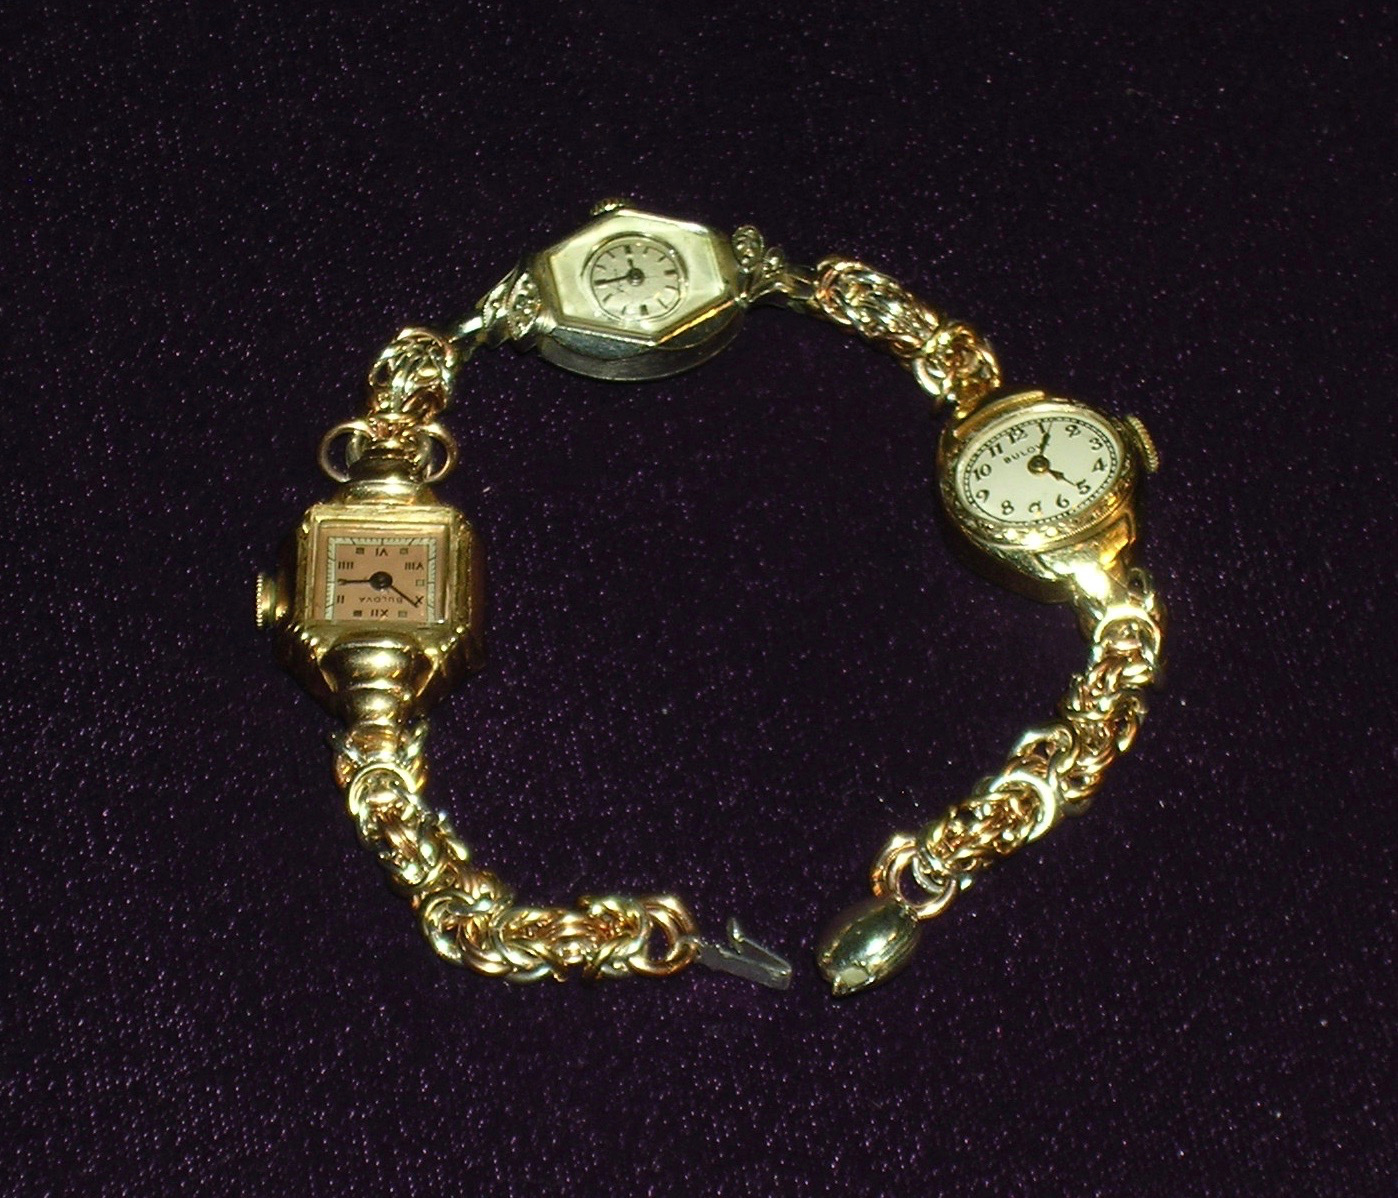 novelty bracelet with antique watches